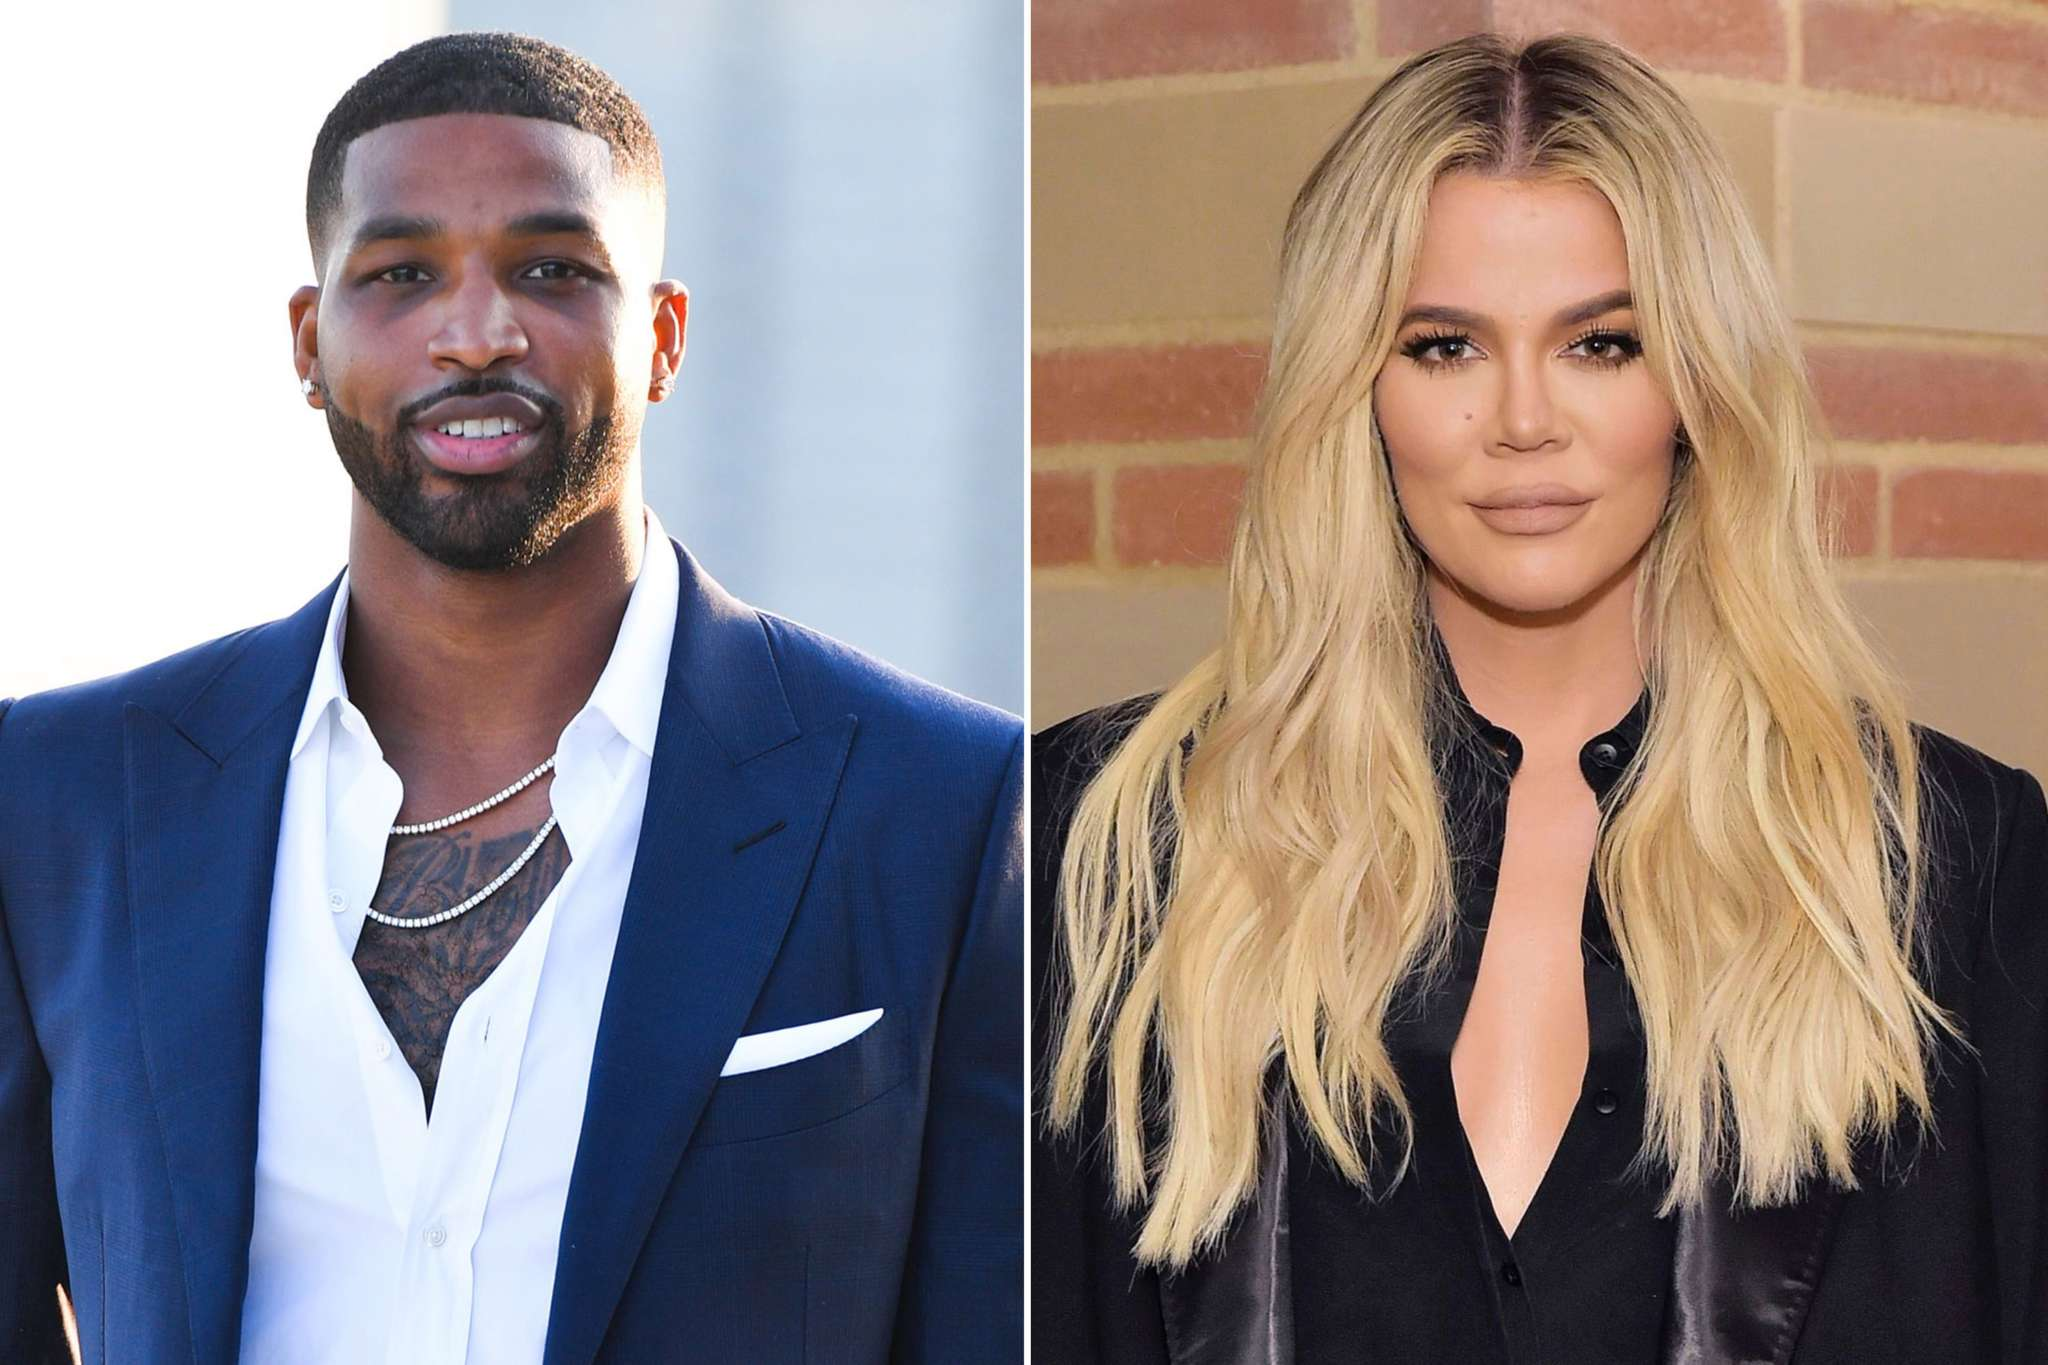 Khloe Kardashian reveals she is in 'really good space' with Tristan Thompson